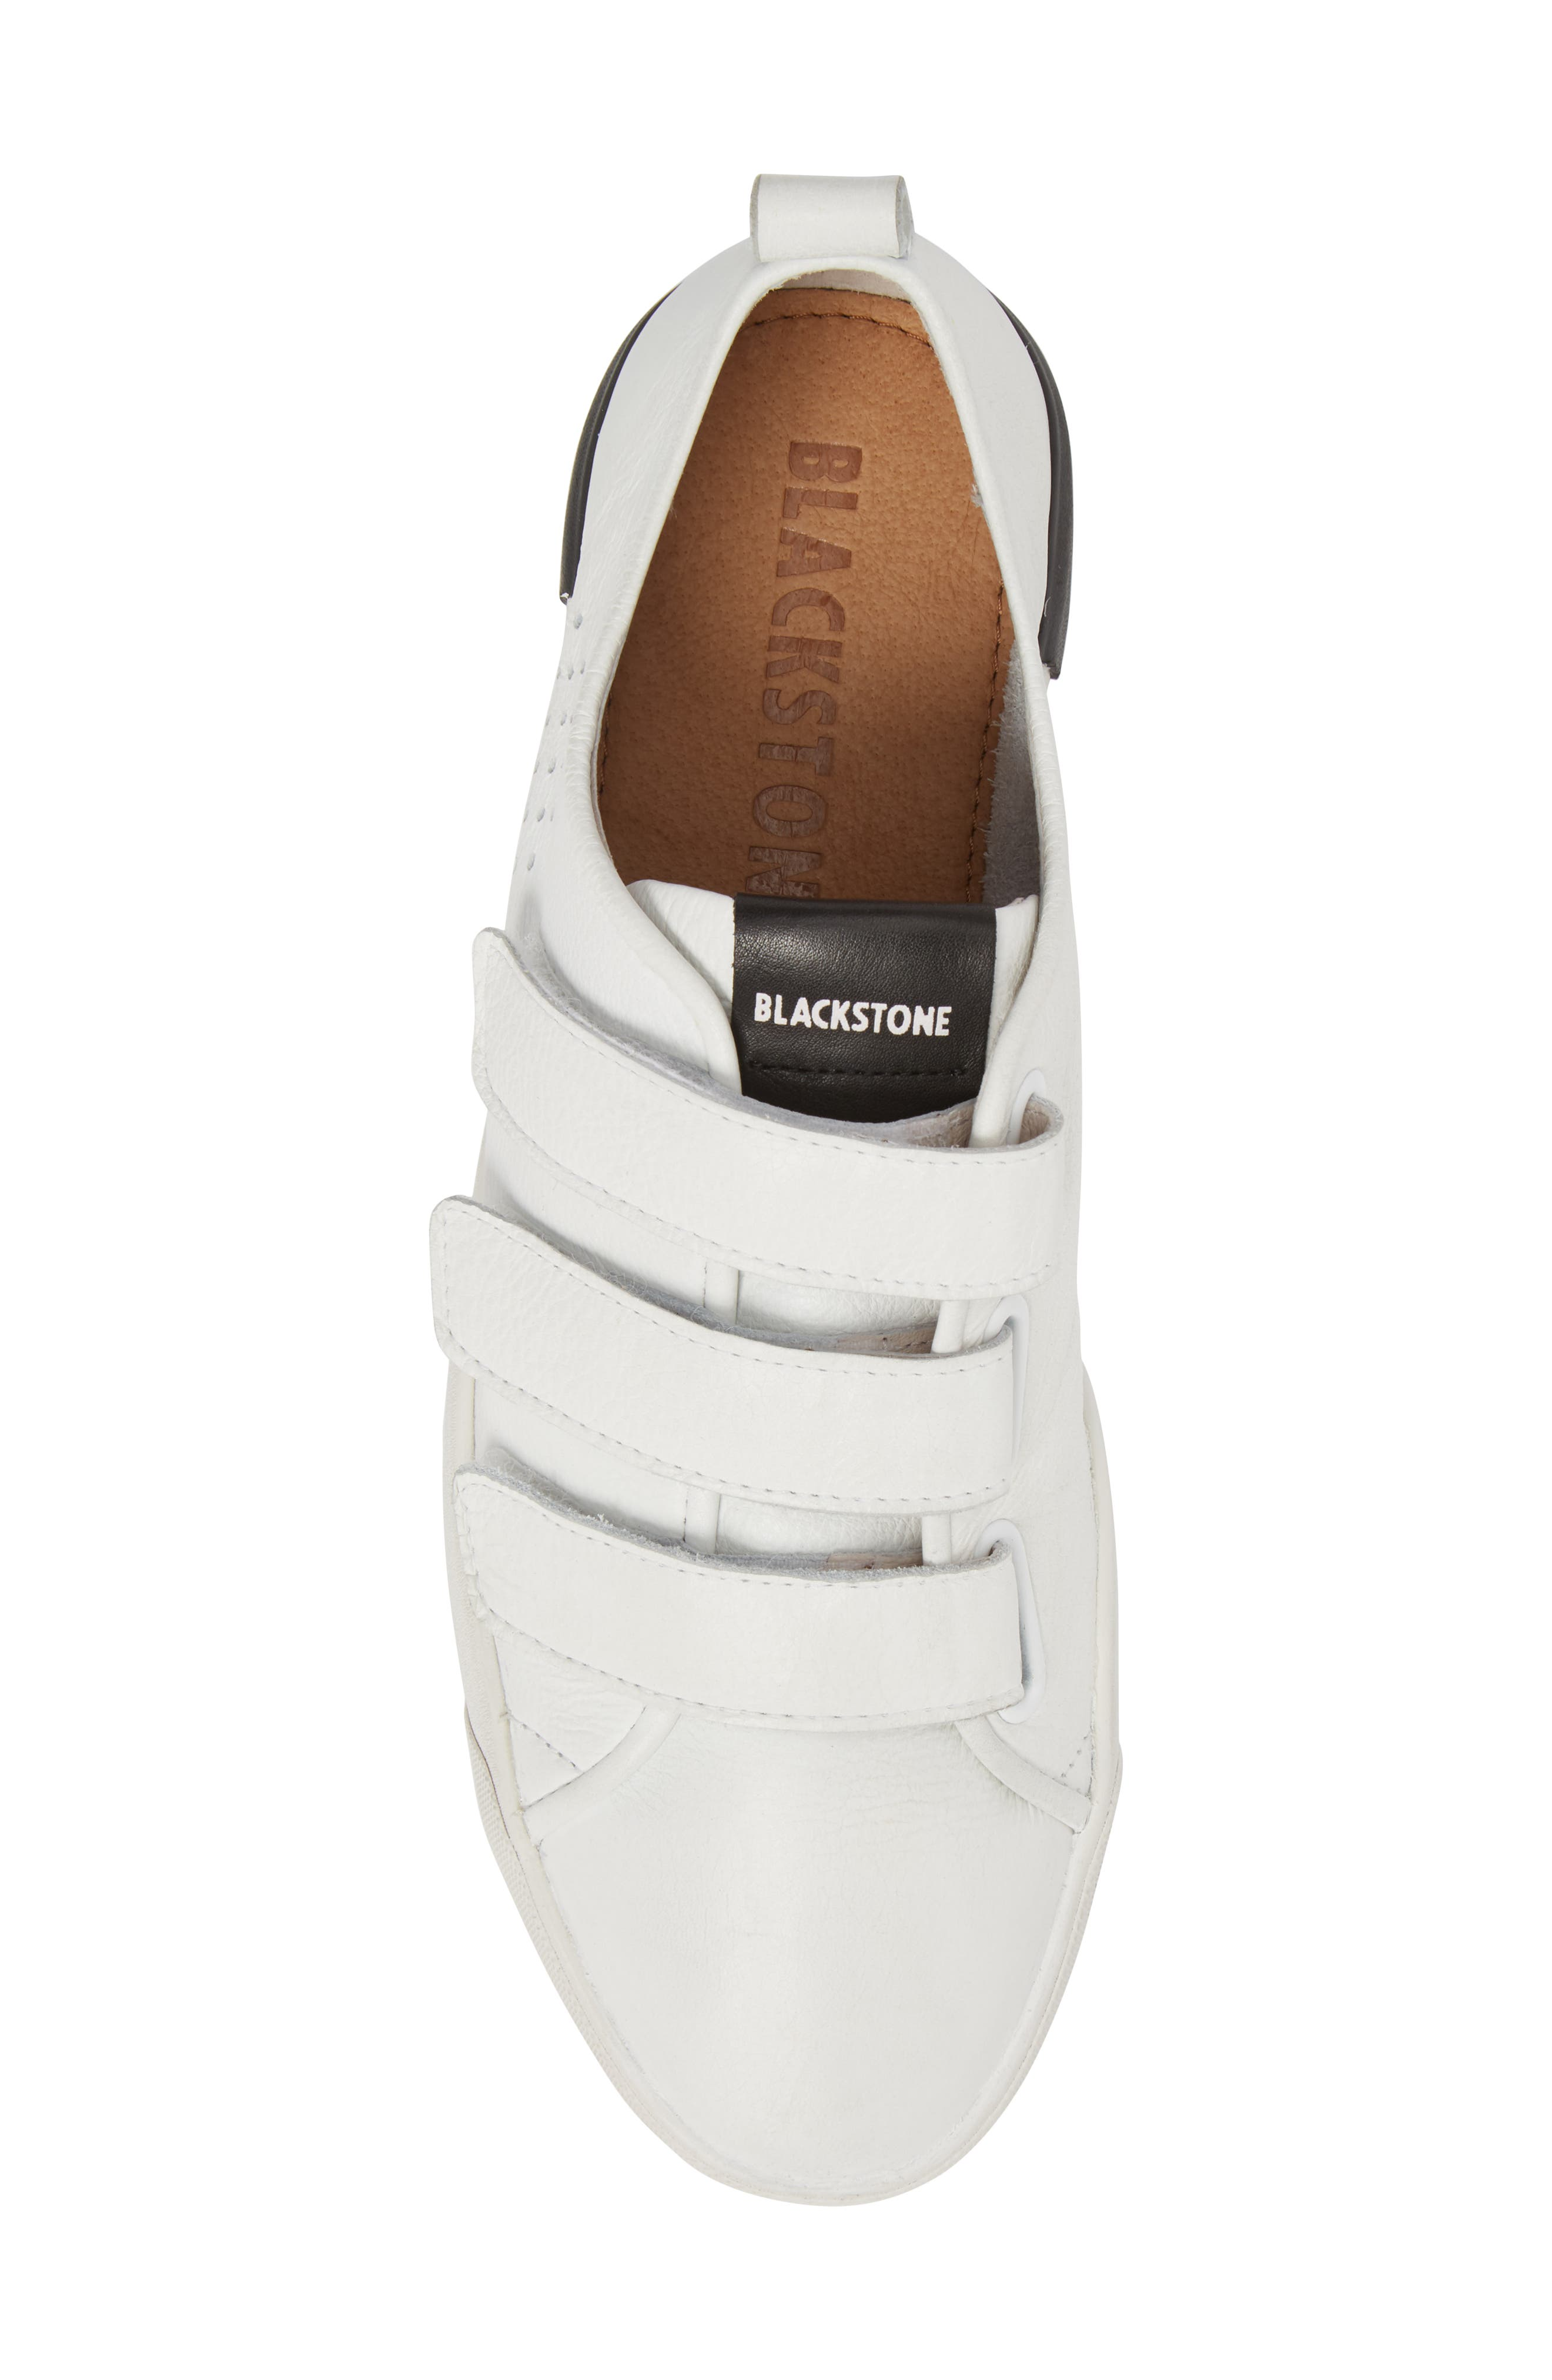 PM41 Low Top Sneaker,                             Alternate thumbnail 5, color,                             WHITE LEATHER